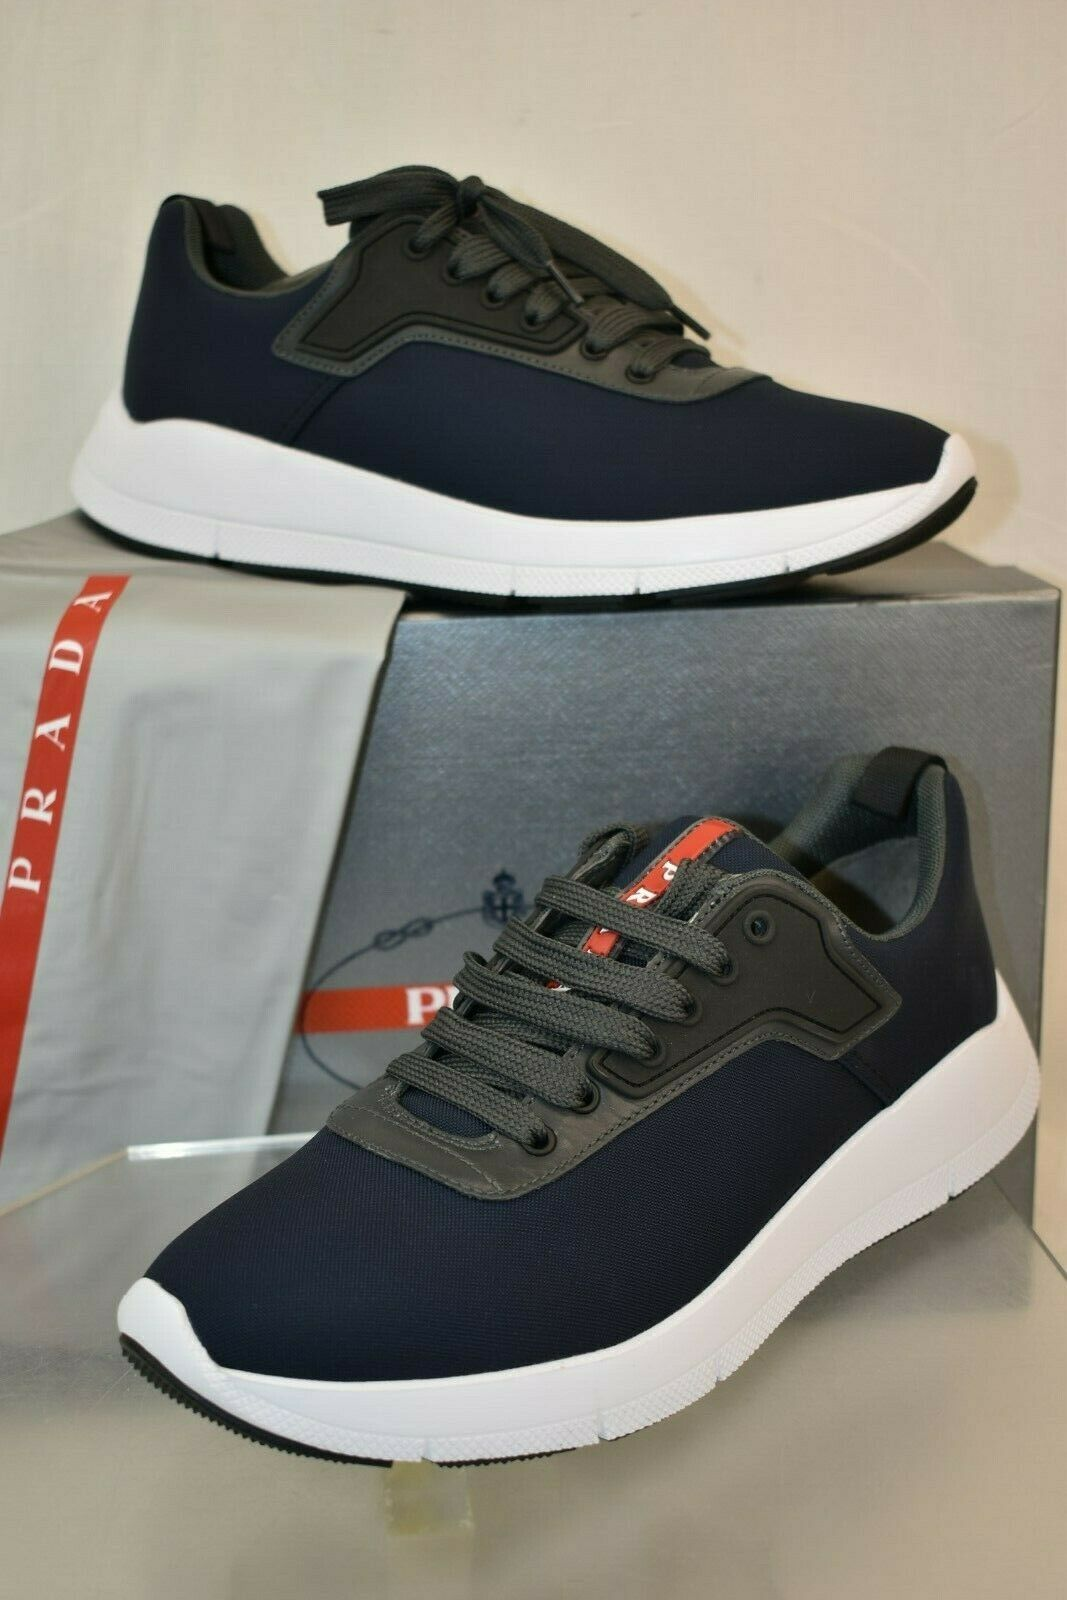 NIB PRADA MEN'S DARK NAVY NYLON TECH LACE UP LOGO SNEAKERS 7 US 8 4E3148